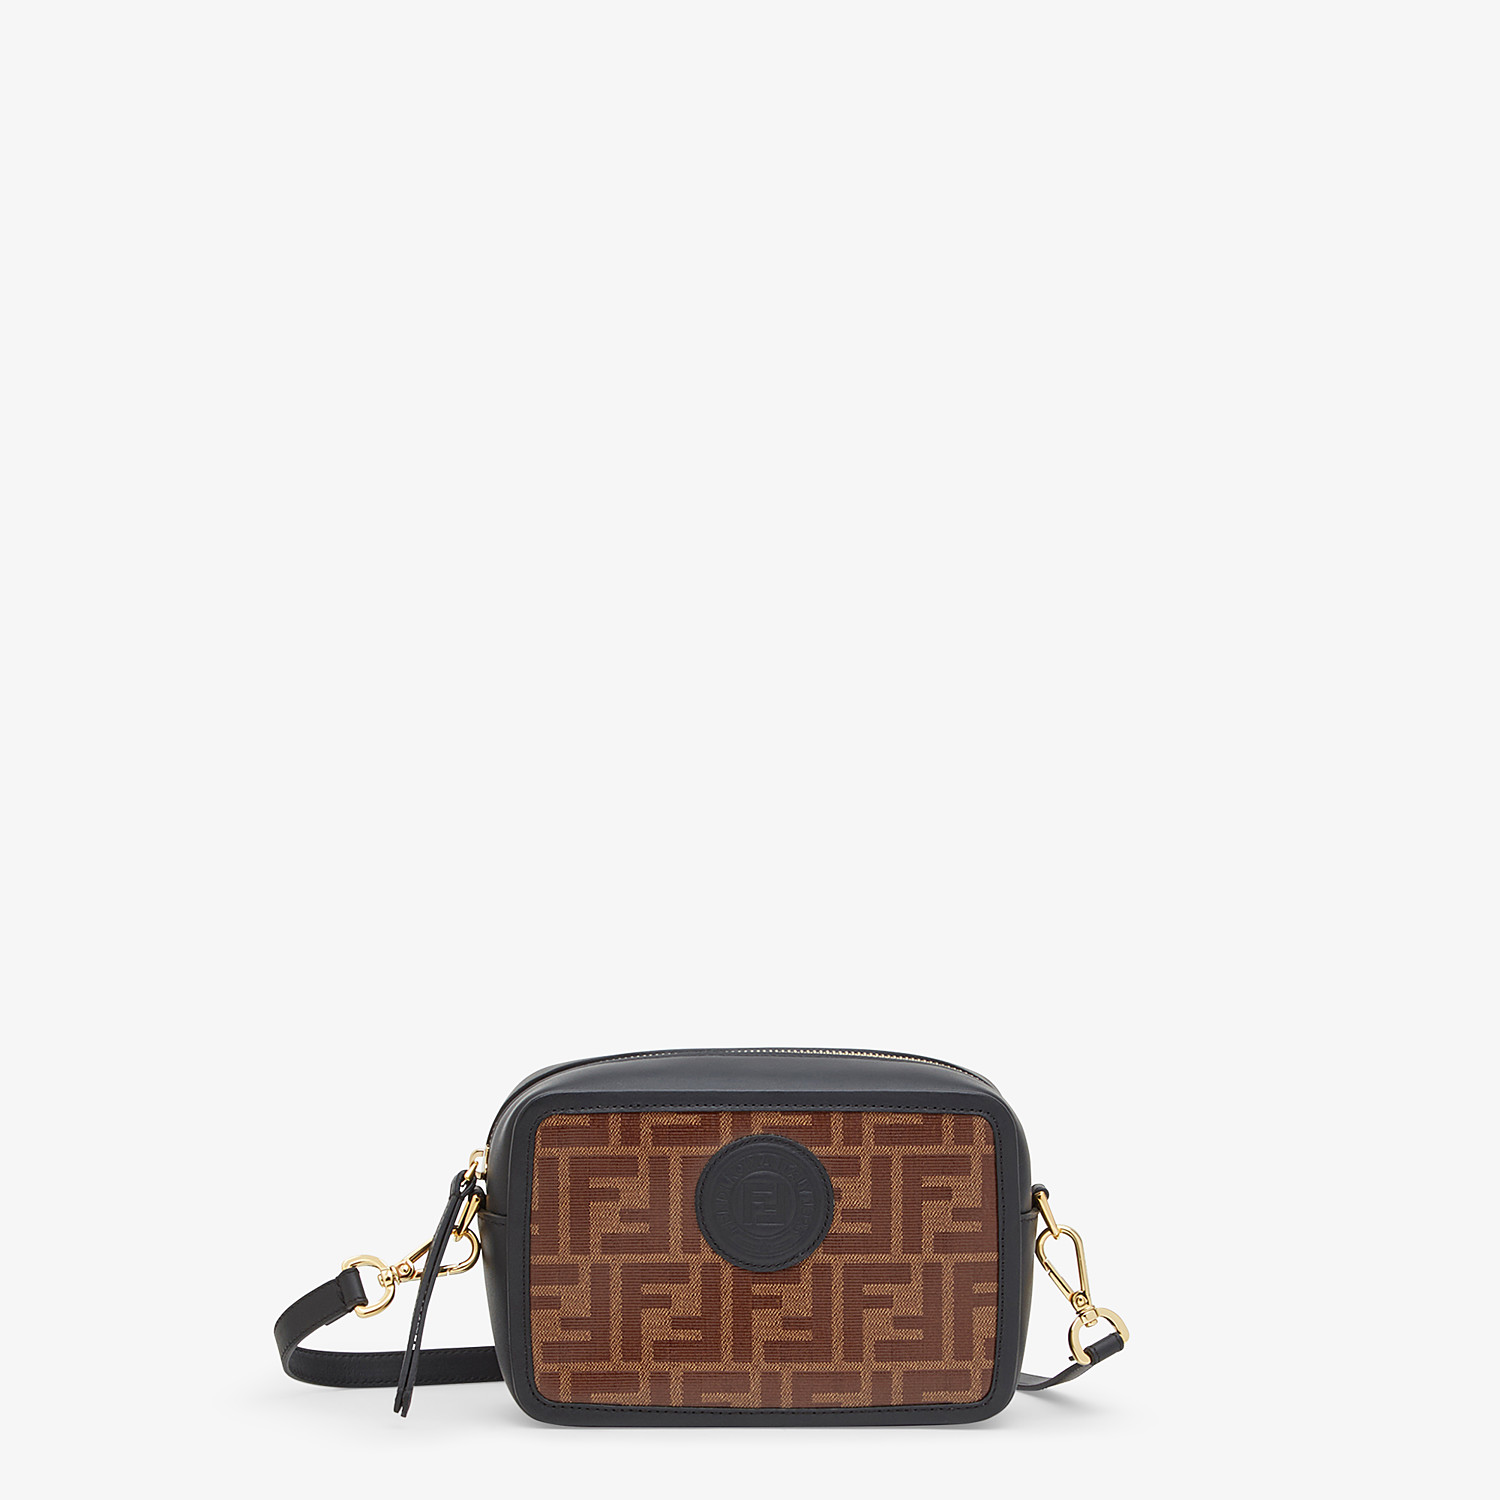 FENDI MINI CAMERA CASE - Multicolor canvas bag - view 1 detail